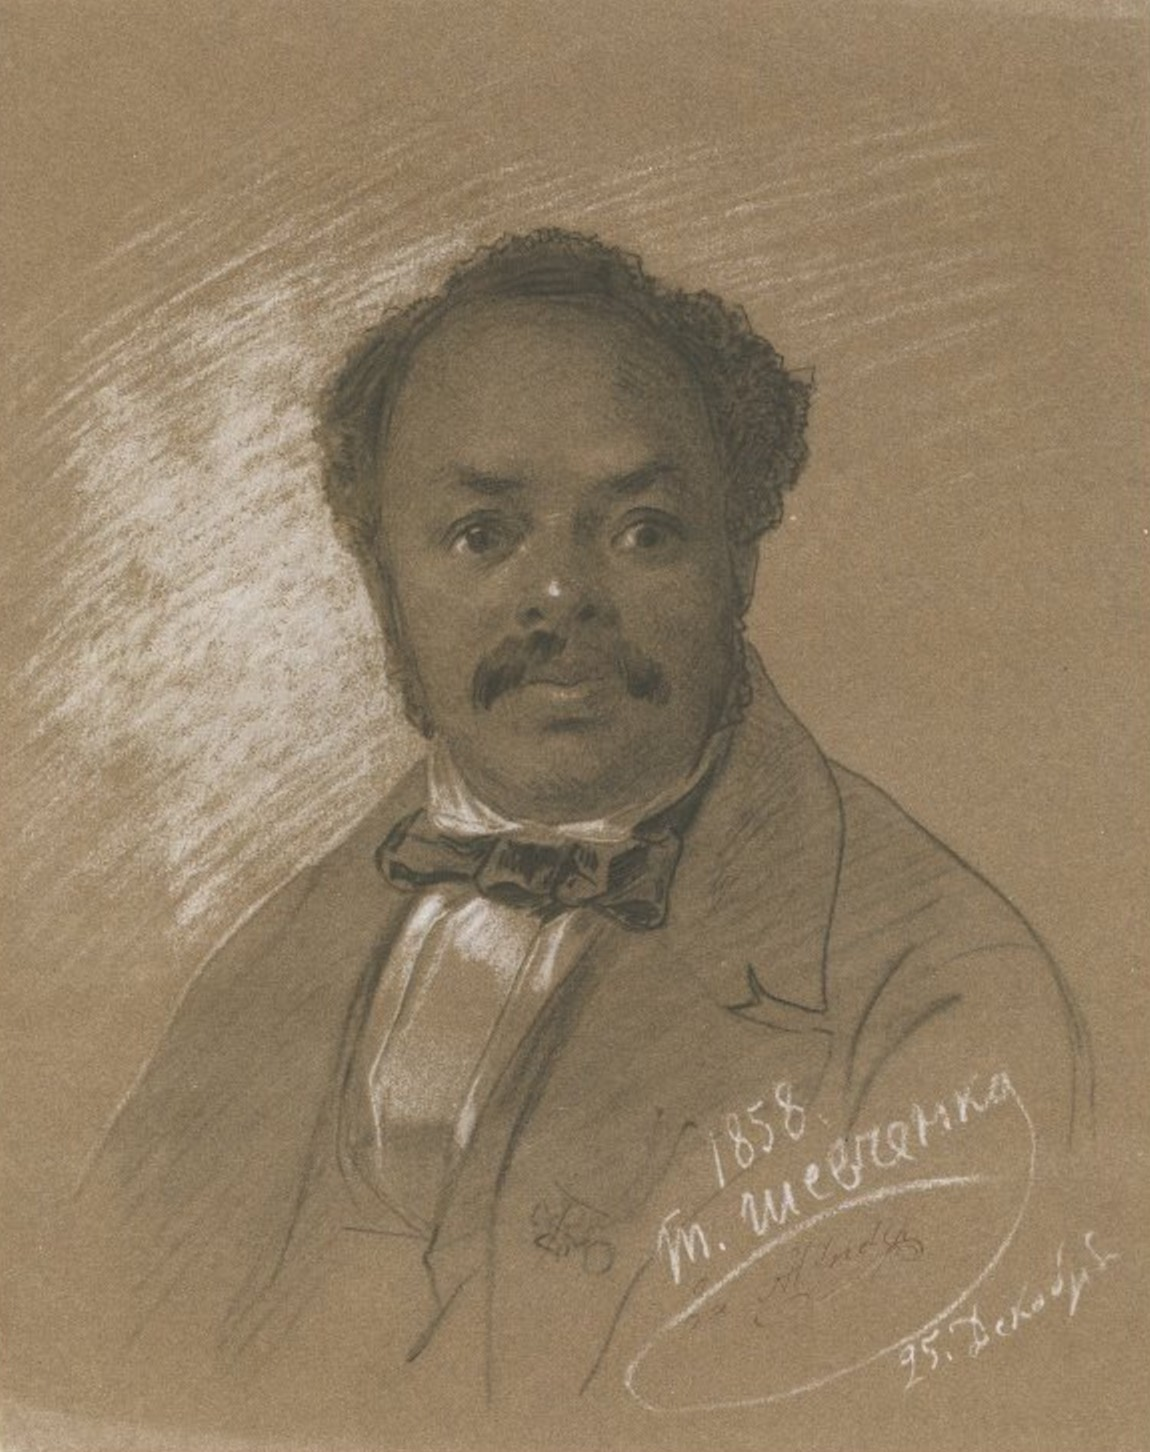 <b>Ira Aldridge, 1858</b>     	</br>Portrait of Ira Aldridge, December 25, 1858</br><br/><b>Source: </b><i>Taras Shevchenko, [Portrait of Ira Frederick Aldridge (1807-1867)], December 25, 1858, Wikipedia, http://en.wikipedia.org/wiki/File:Portrait_of_Ira_Aldridge,_by_Taras_Shevchenko_(1858).jpg</i>